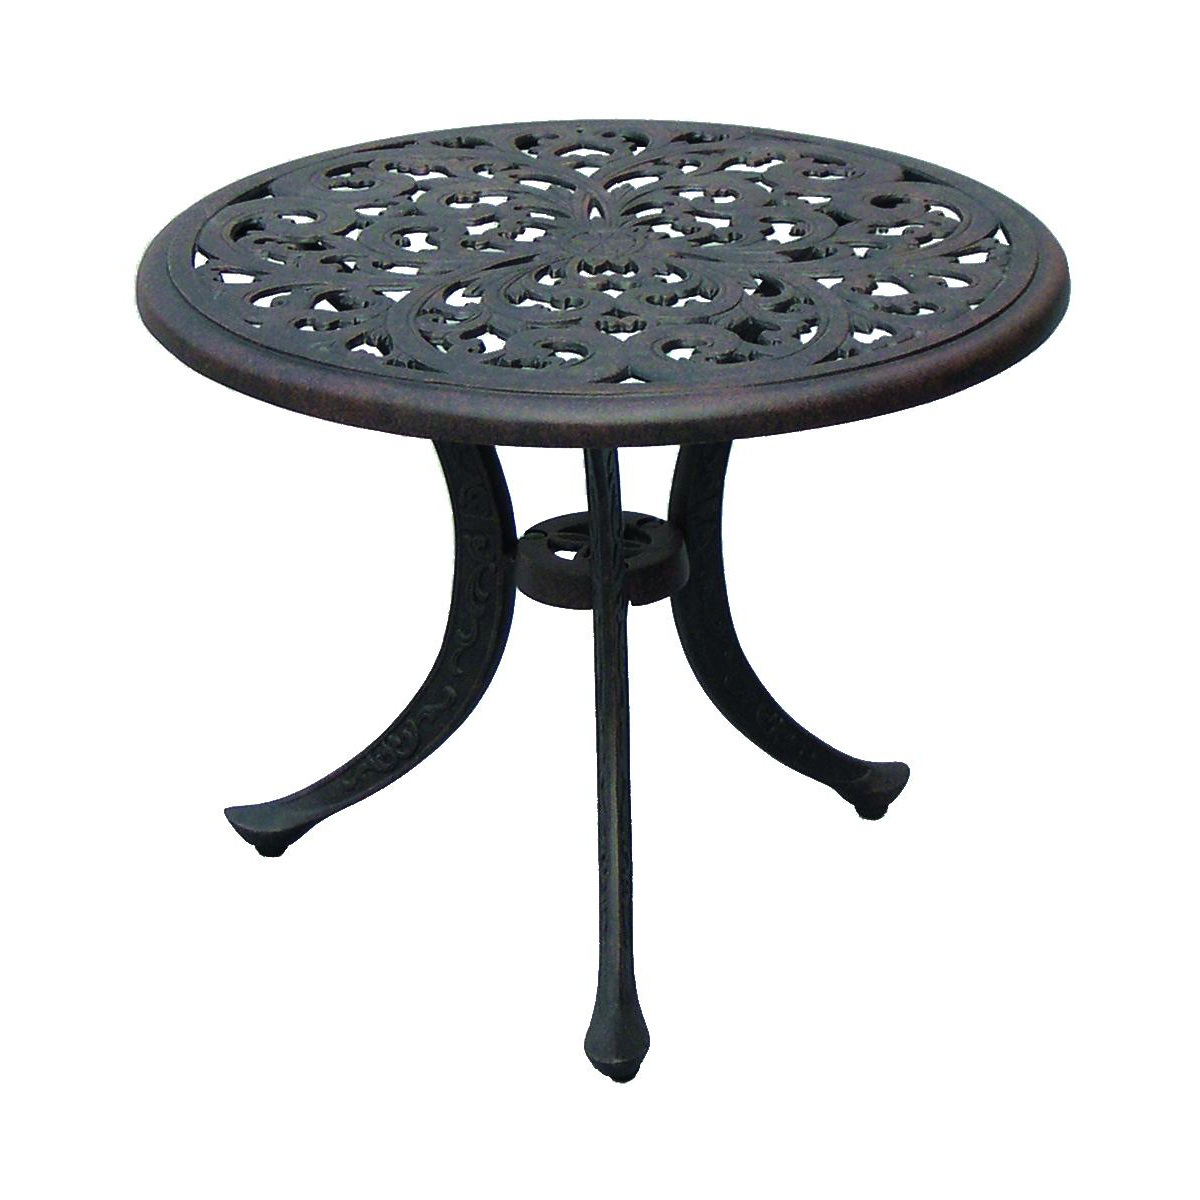 patio accent tables hampton bay pembrey table darlee series round end atg trestle pine living room furniture small distressed metal dining chairs target runners slim couch iron